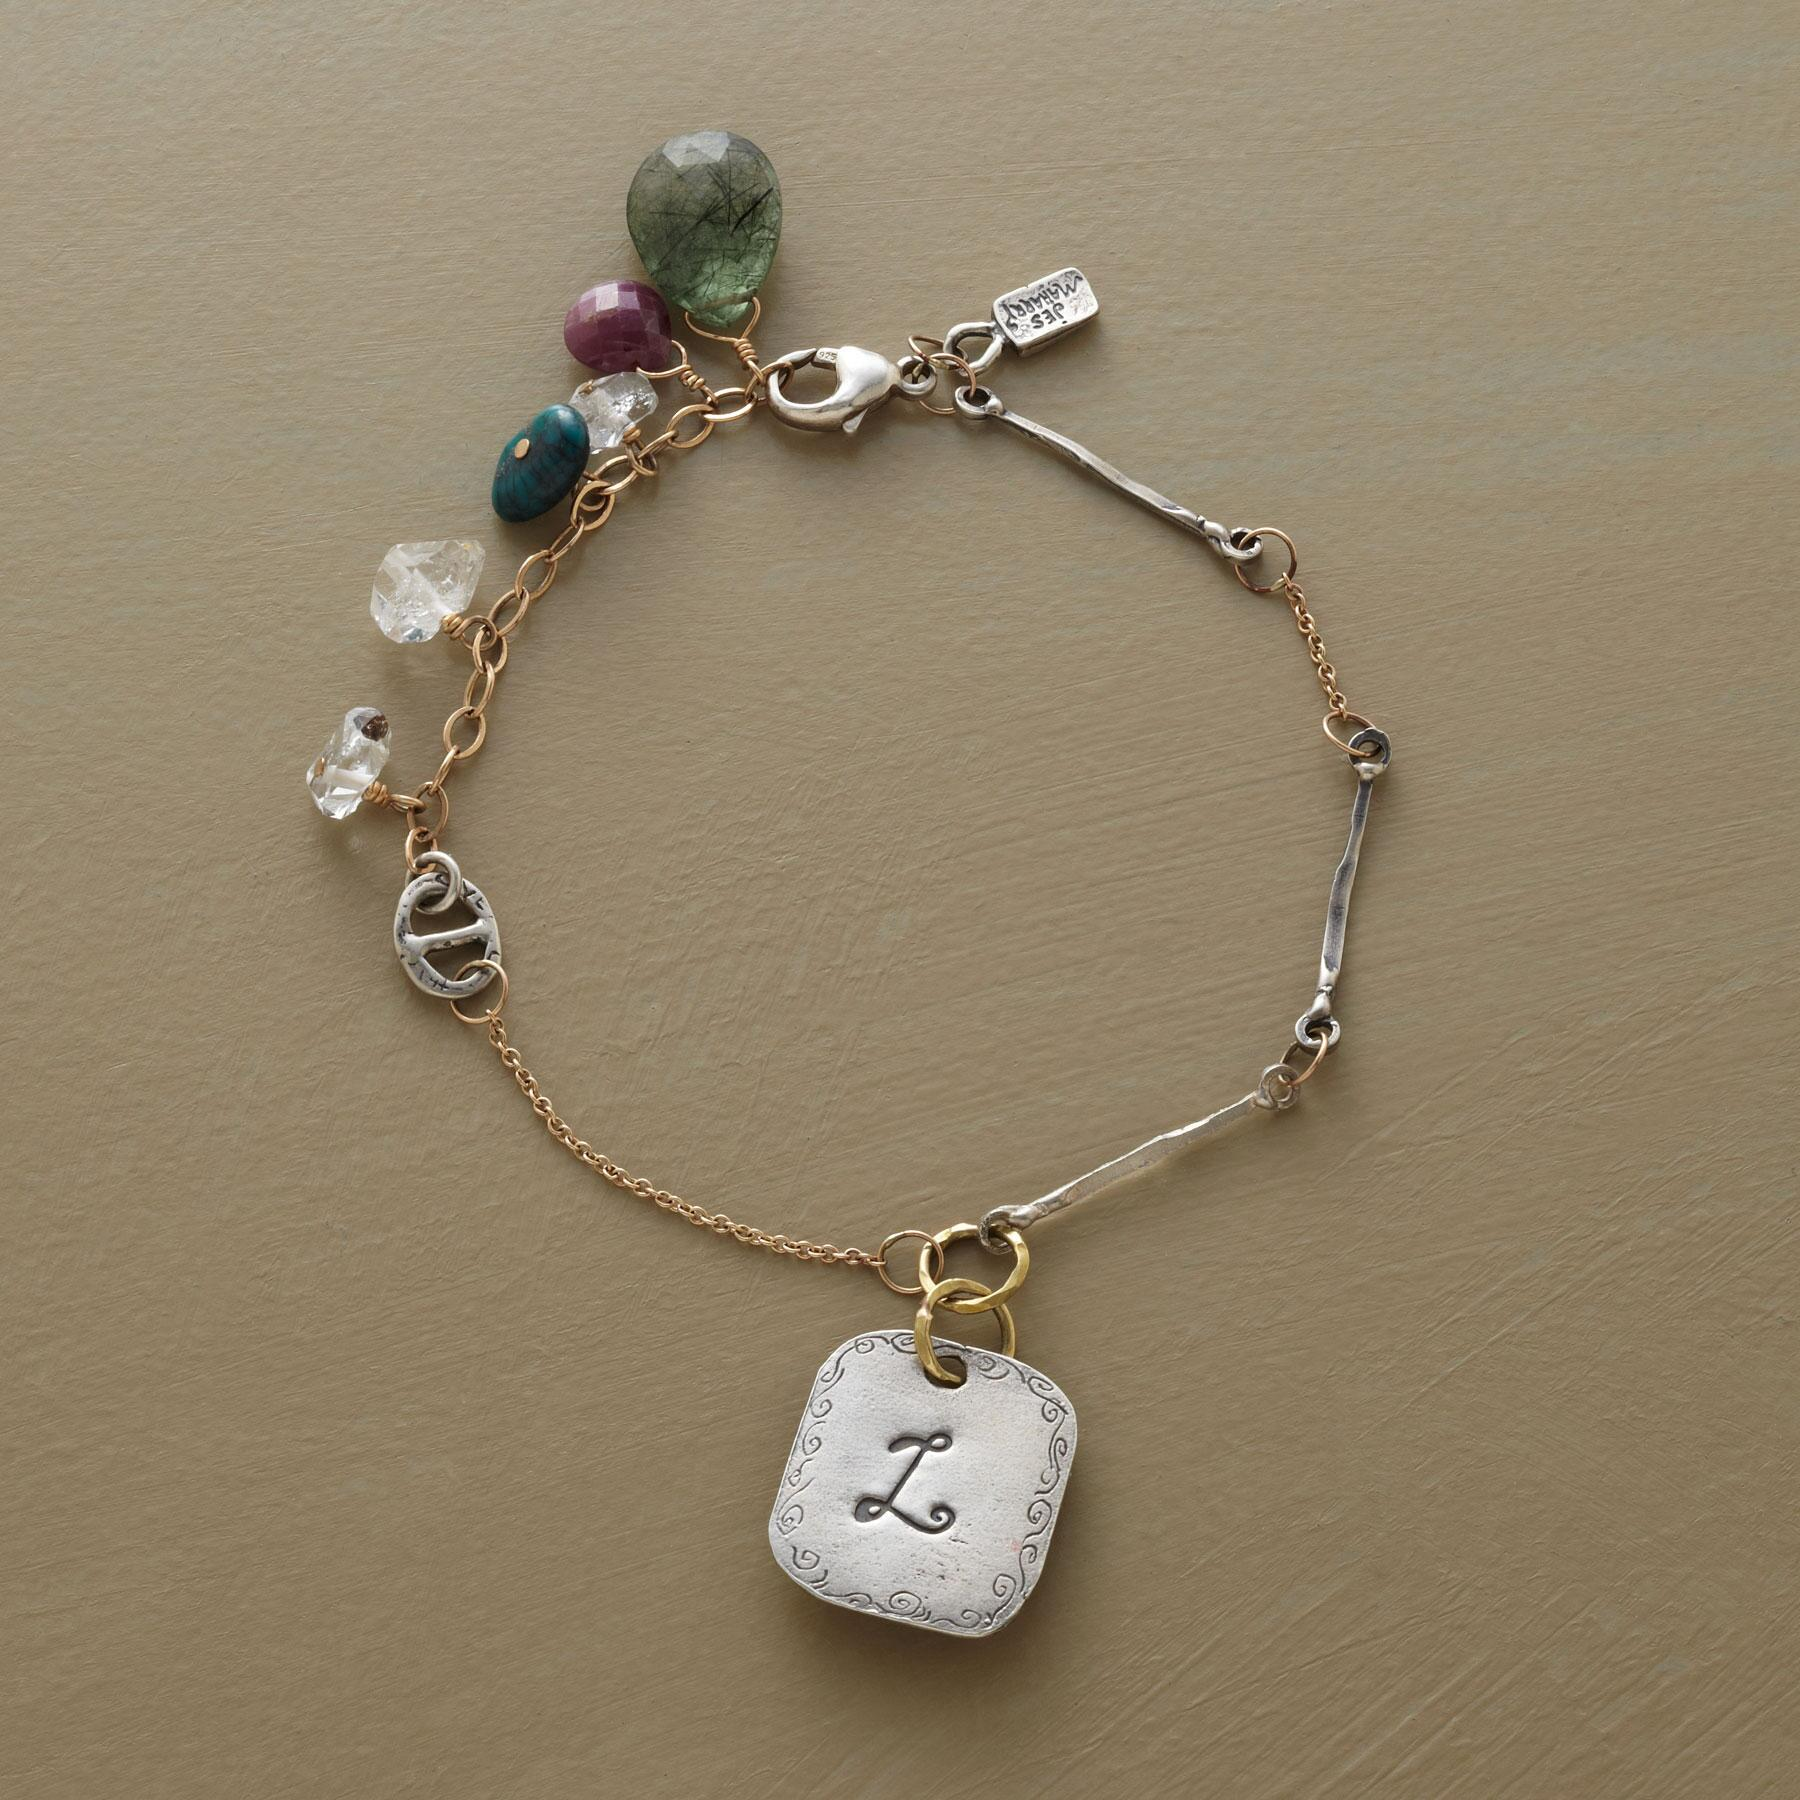 PERSONALIZED CHARMER BRACELET BY JES MAHARRY: View 1